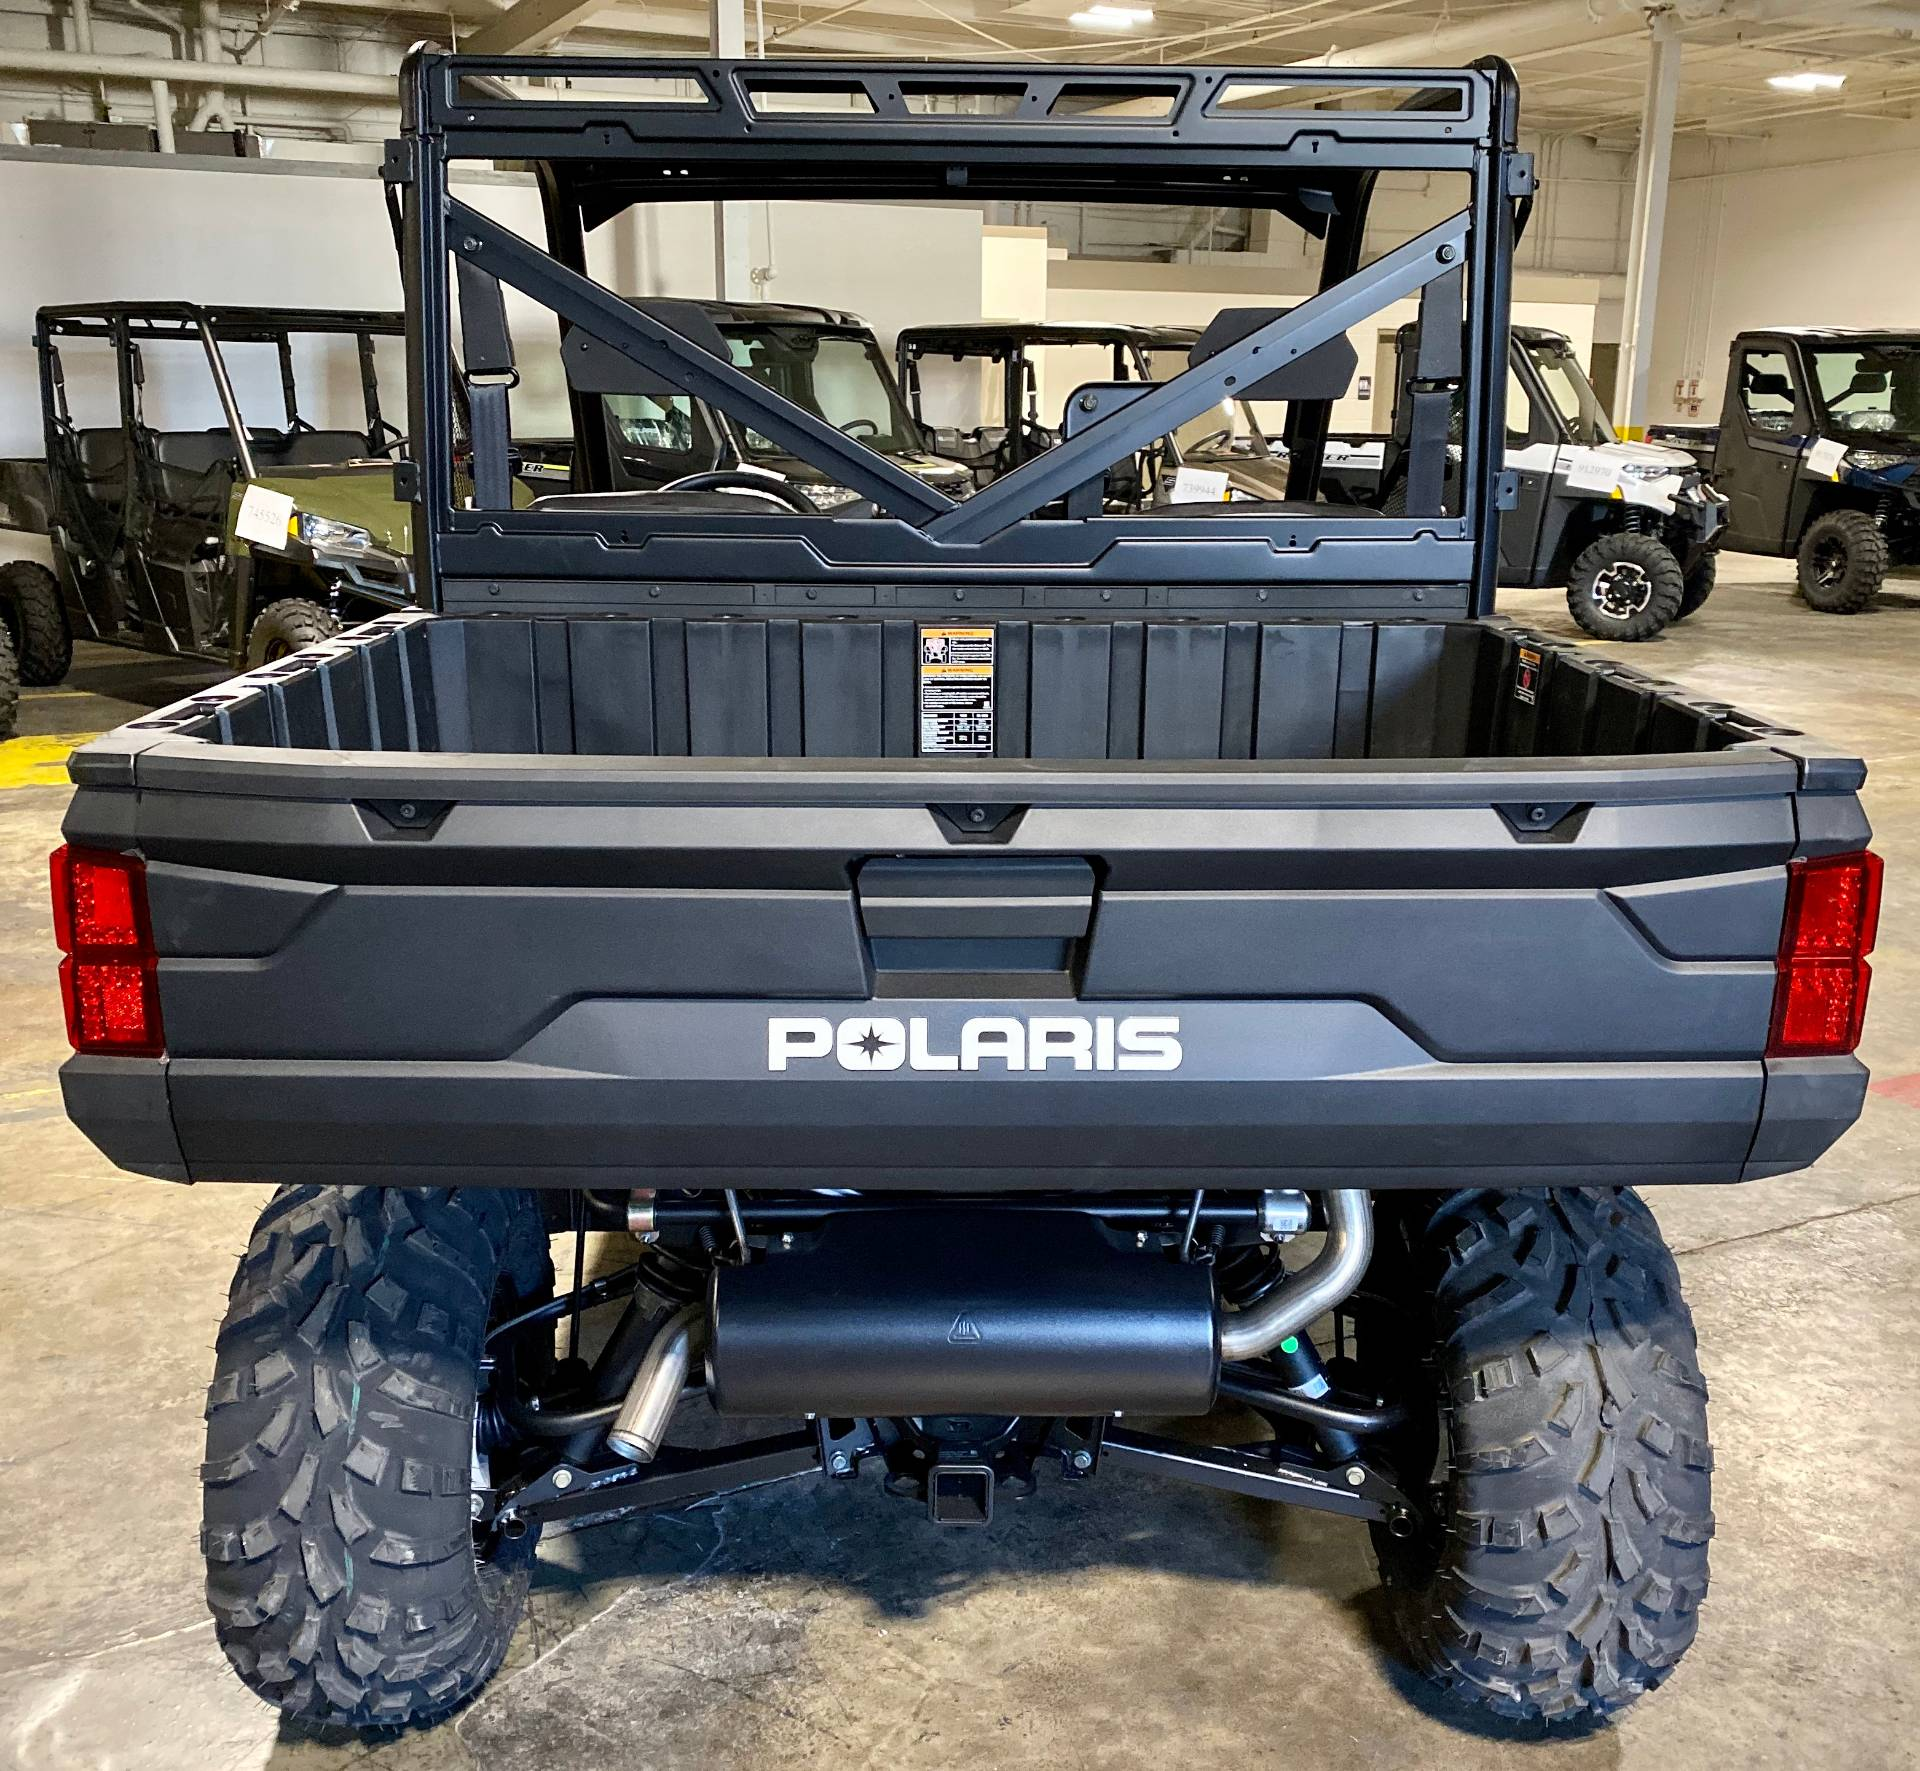 2020 Polaris Ranger 1000 EPS in Statesville, North Carolina - Photo 5